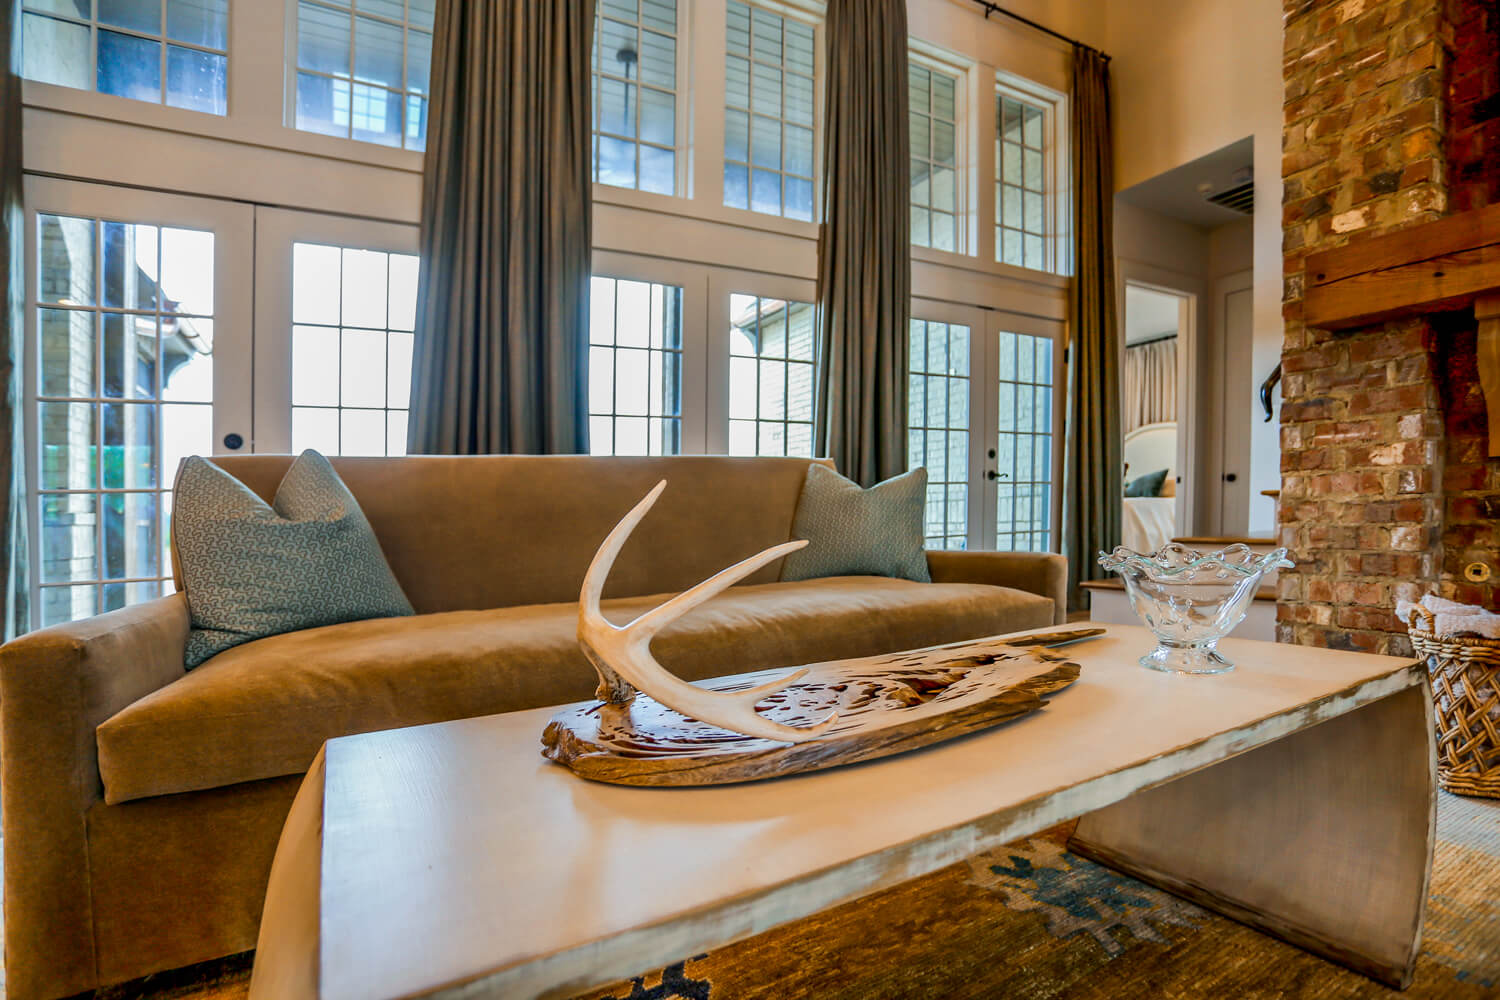 Private Residence - View from Coffee Table - Designed by Foshee Architecture